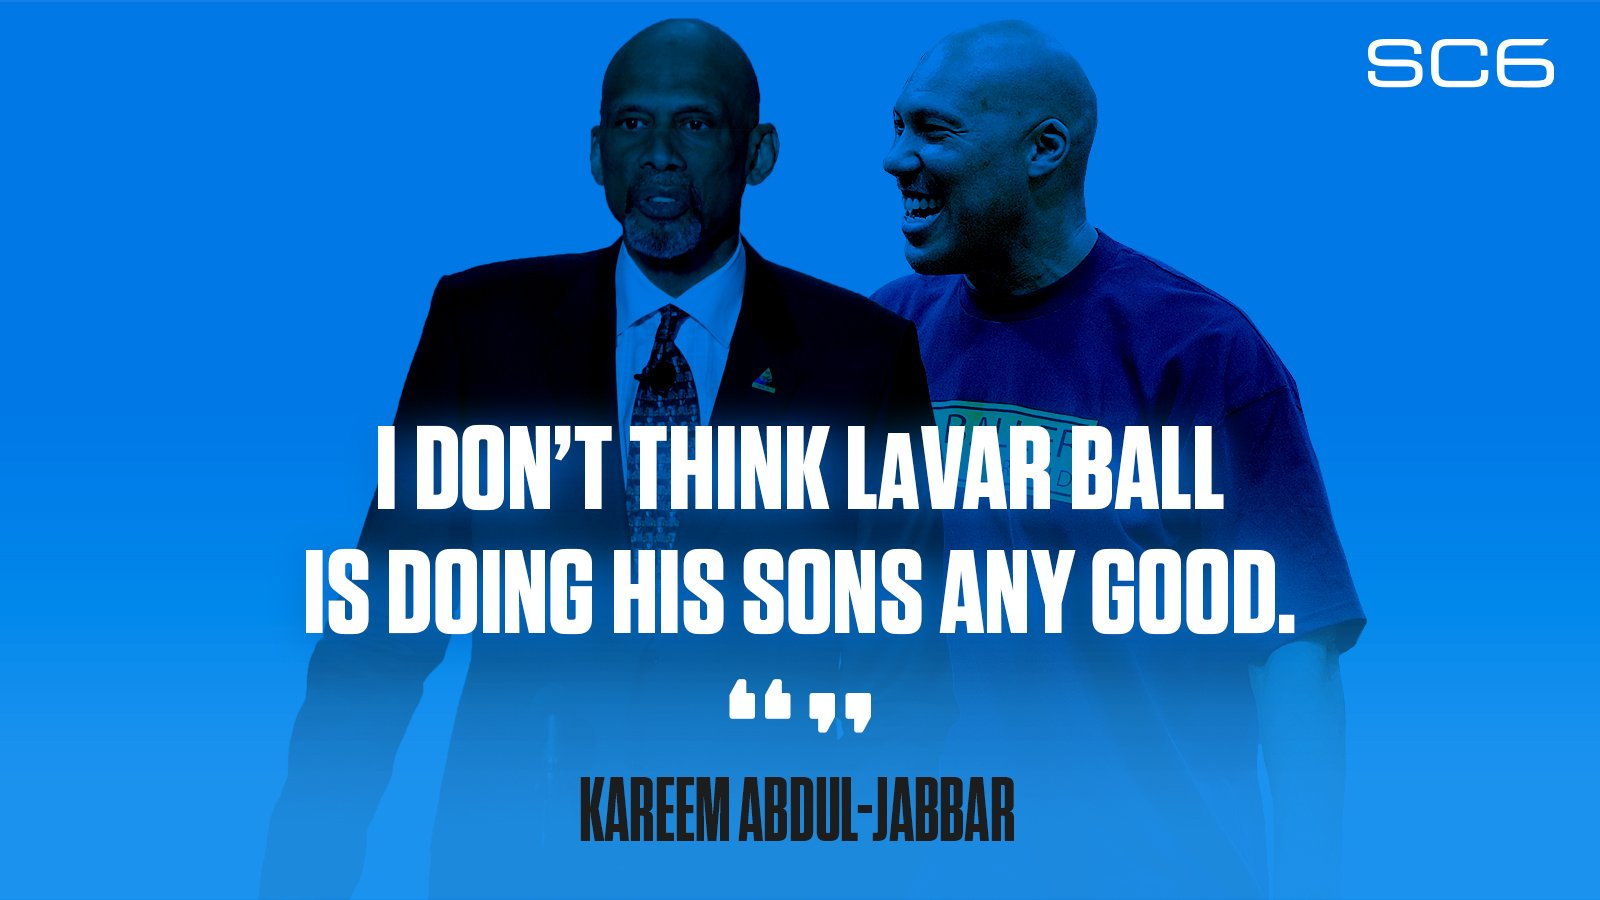 Kareem Abdul-Jabbar has some thoughts on LaVar Ball...  https://t.co/cFfX8BKjXW https://t.co/dGmsvnTYru